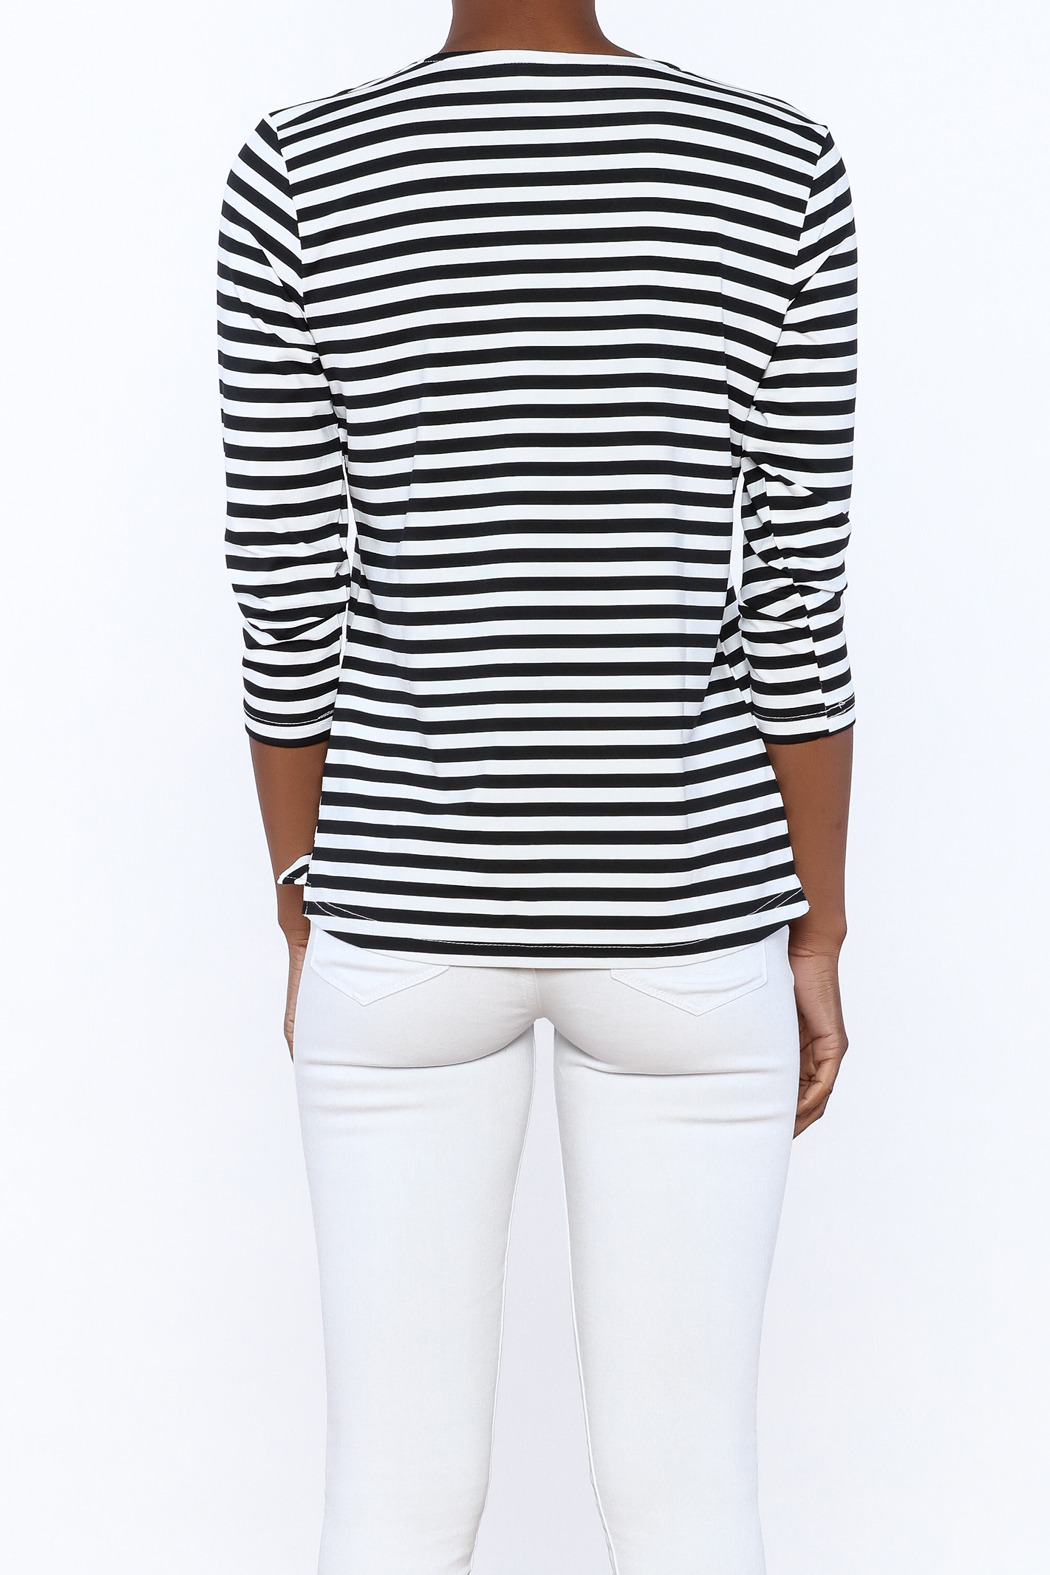 Lulu B Stripe Basic Top - Back Cropped Image